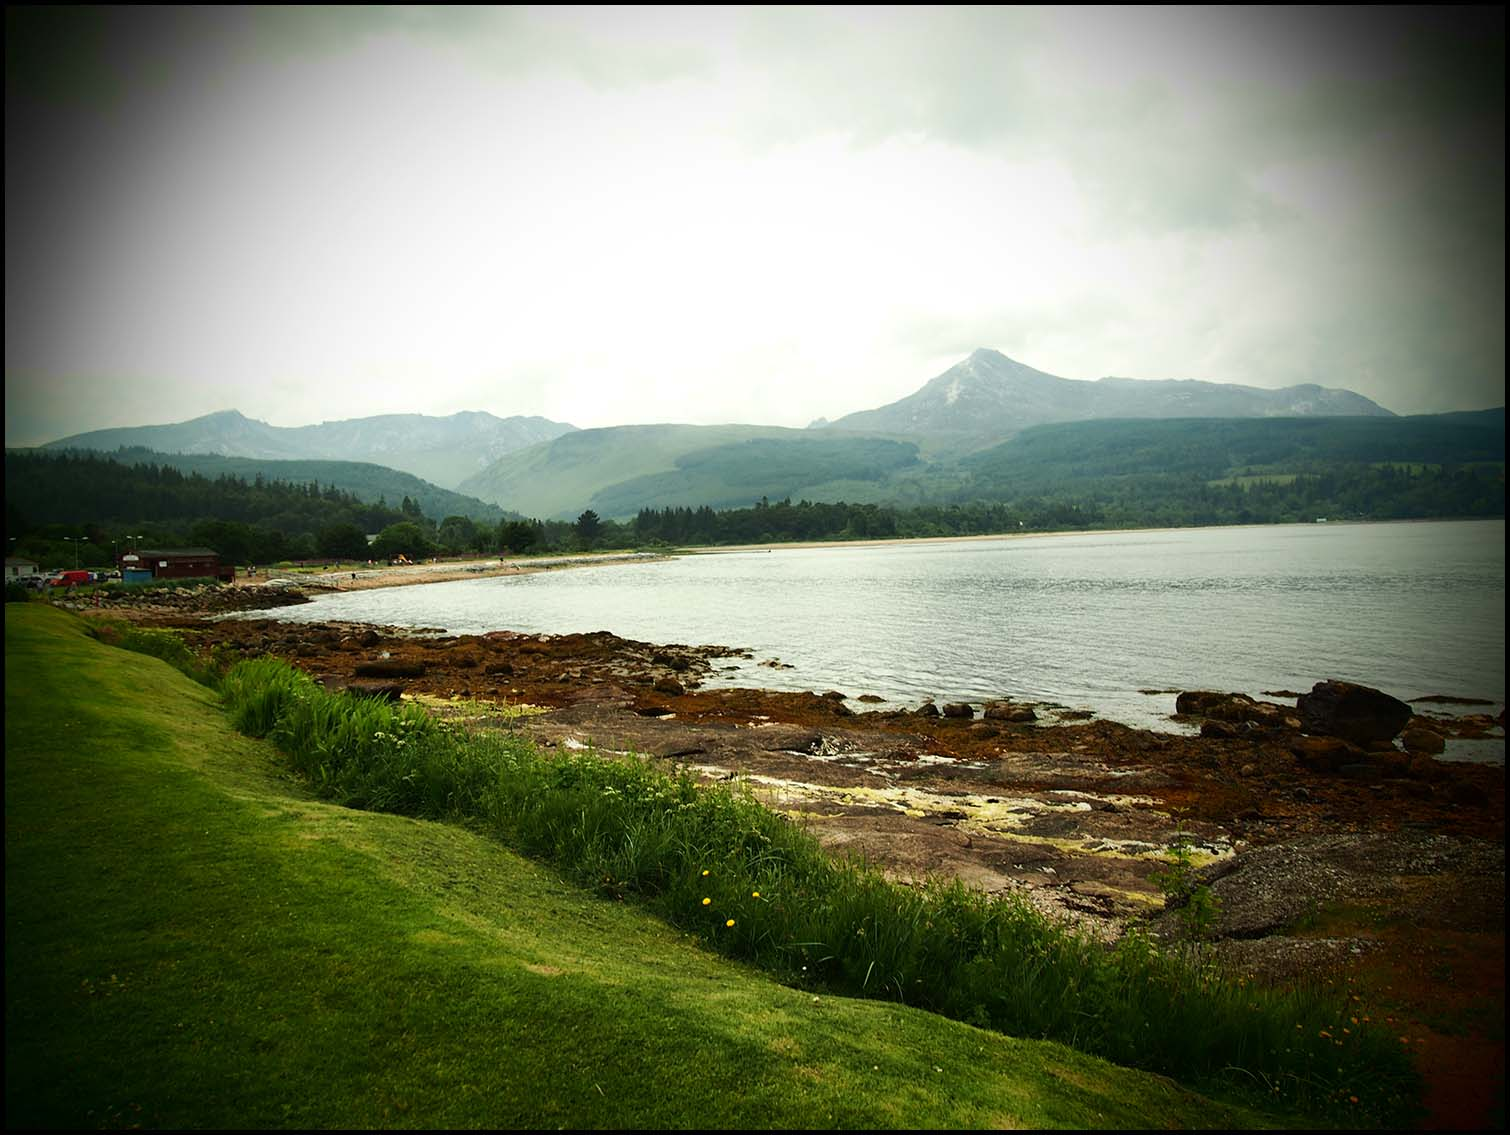 Isle of Arran, Scotland - Photo Diary, July 2015